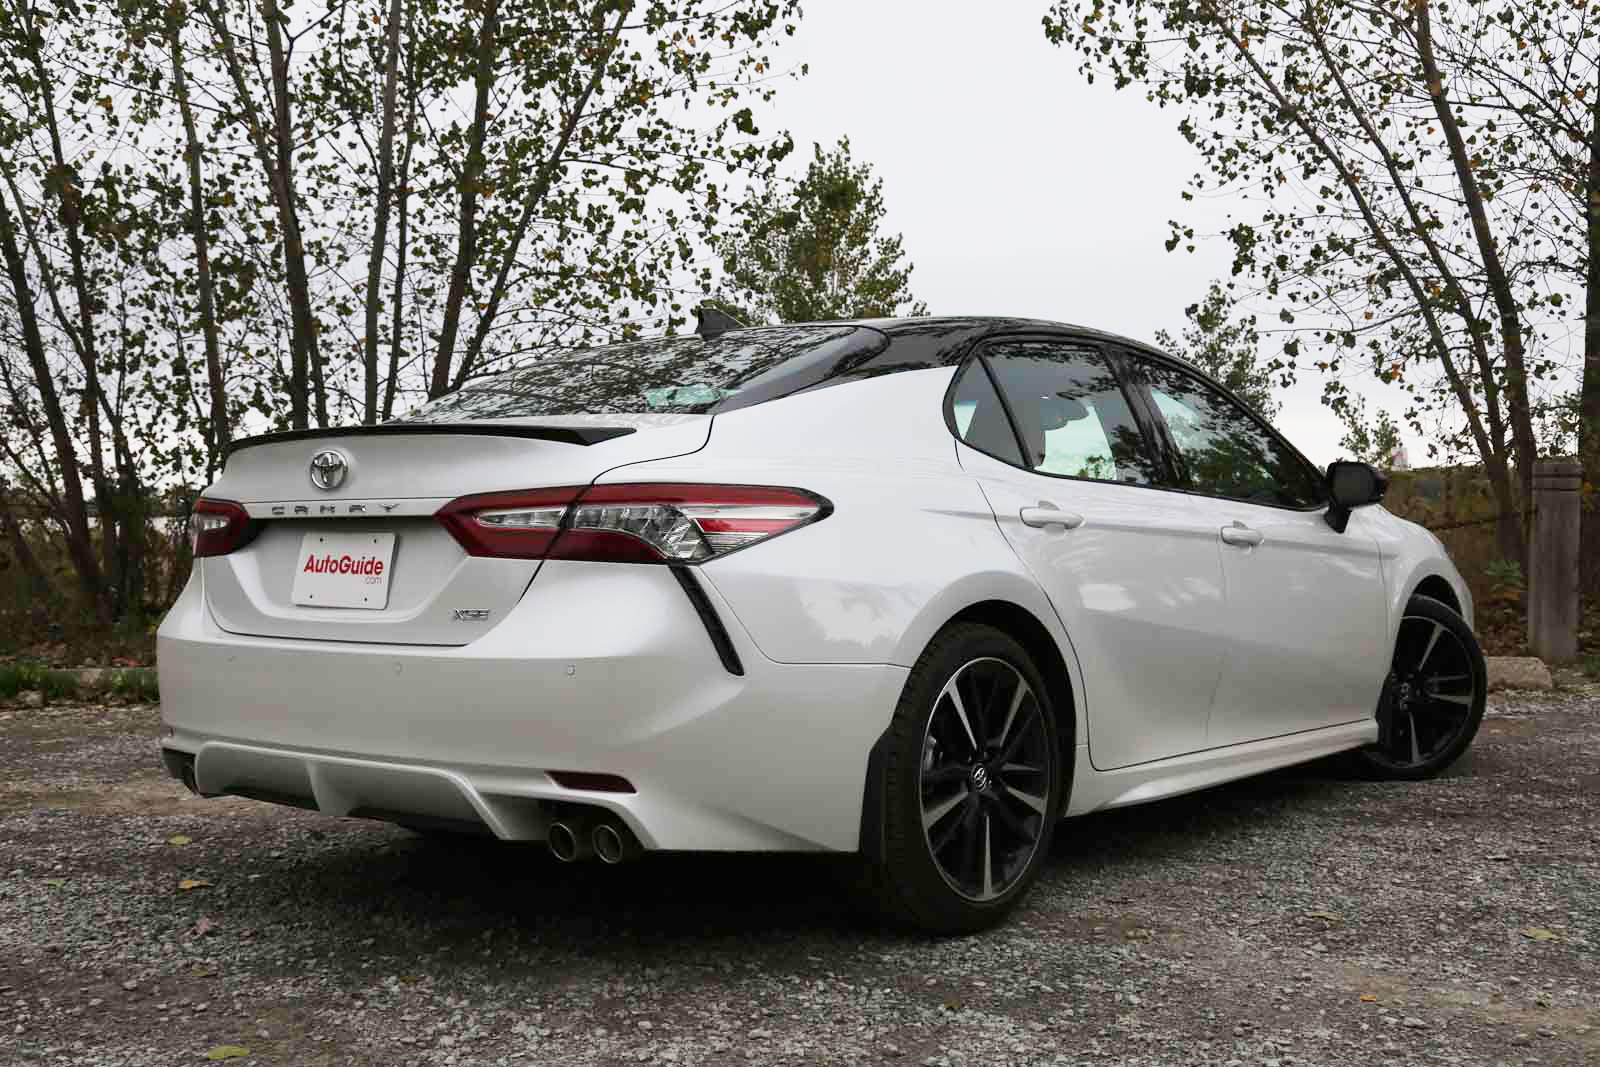 Accord Vs Camry >> 2018 Honda Accord Vs Toyota Camry Comparison Autoguide Com